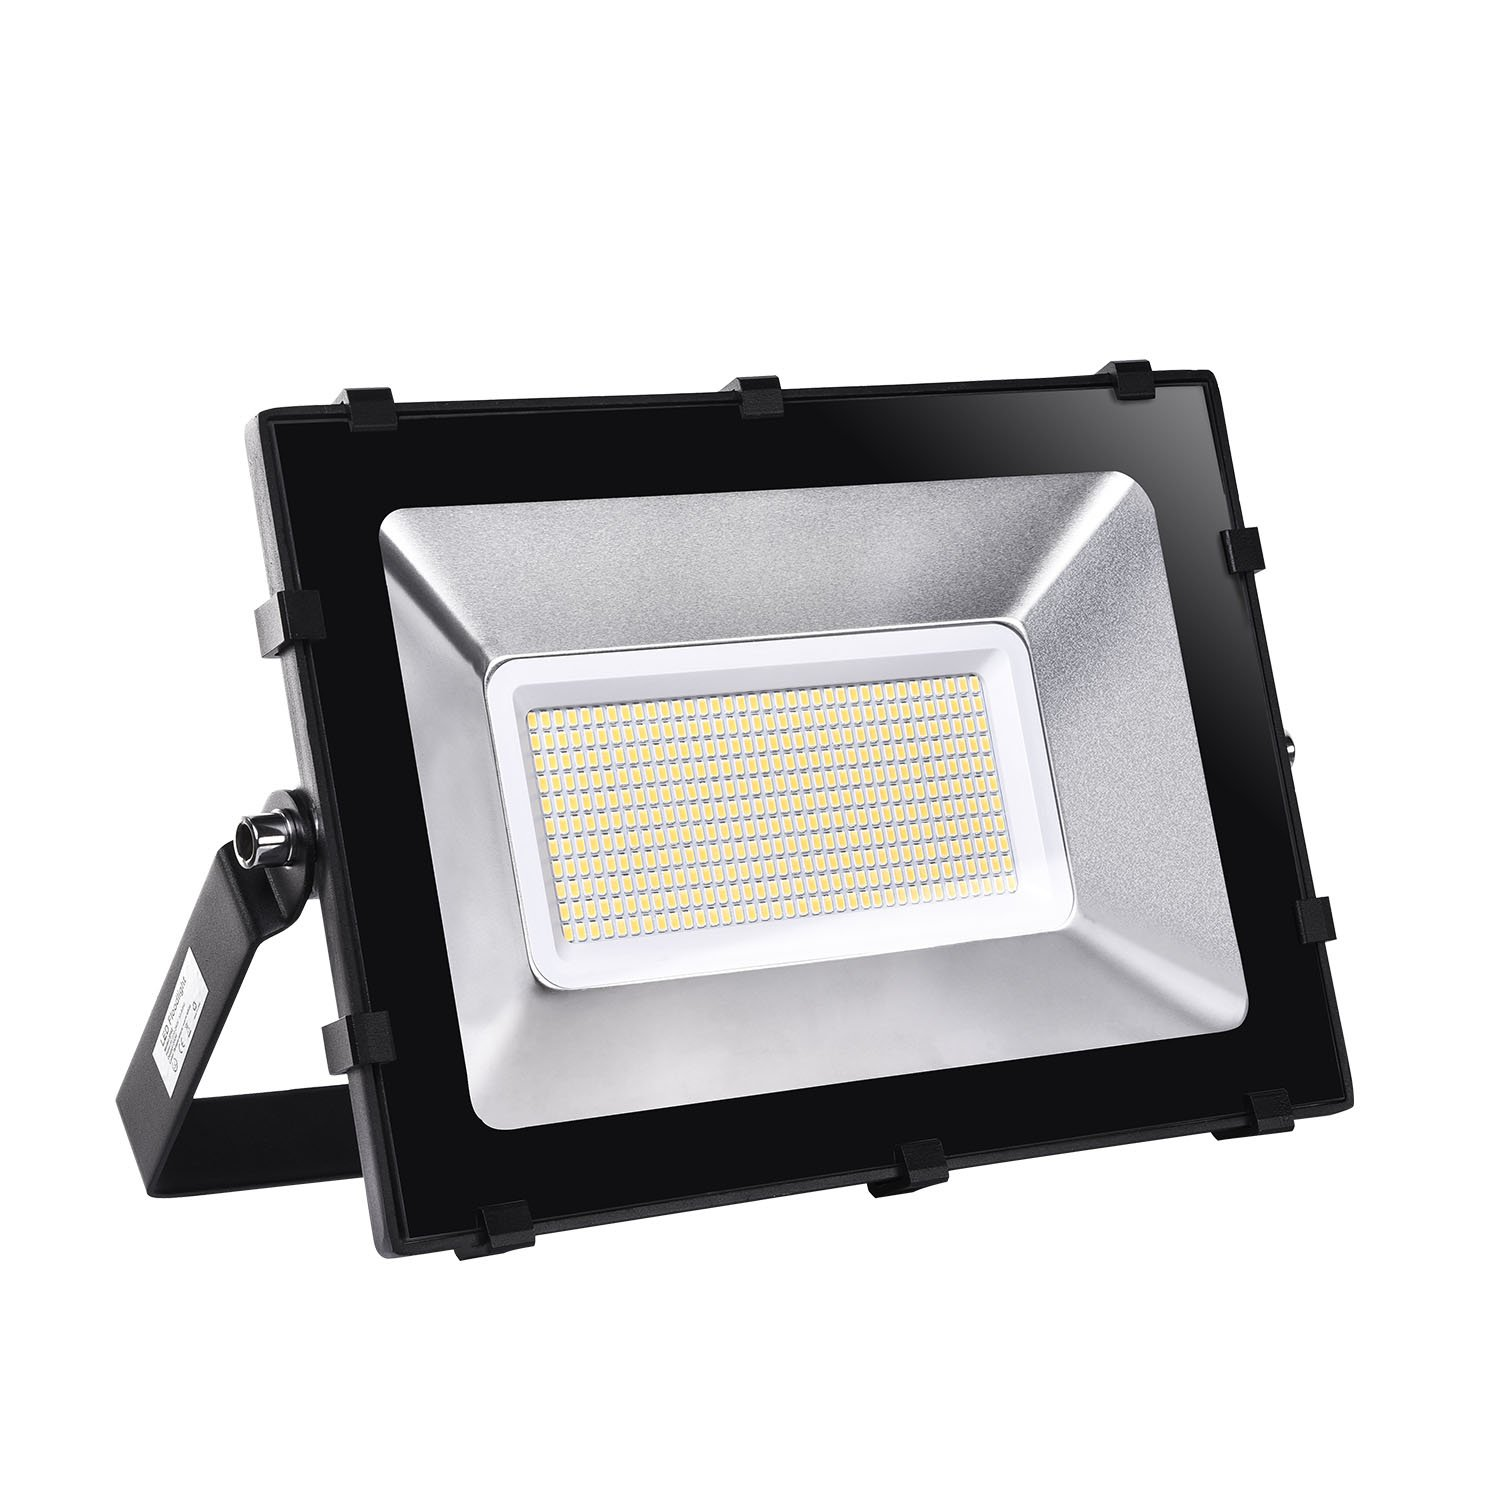 Viugreum 200W Focos LED Exterior Proyector Impermeable IP65 ...